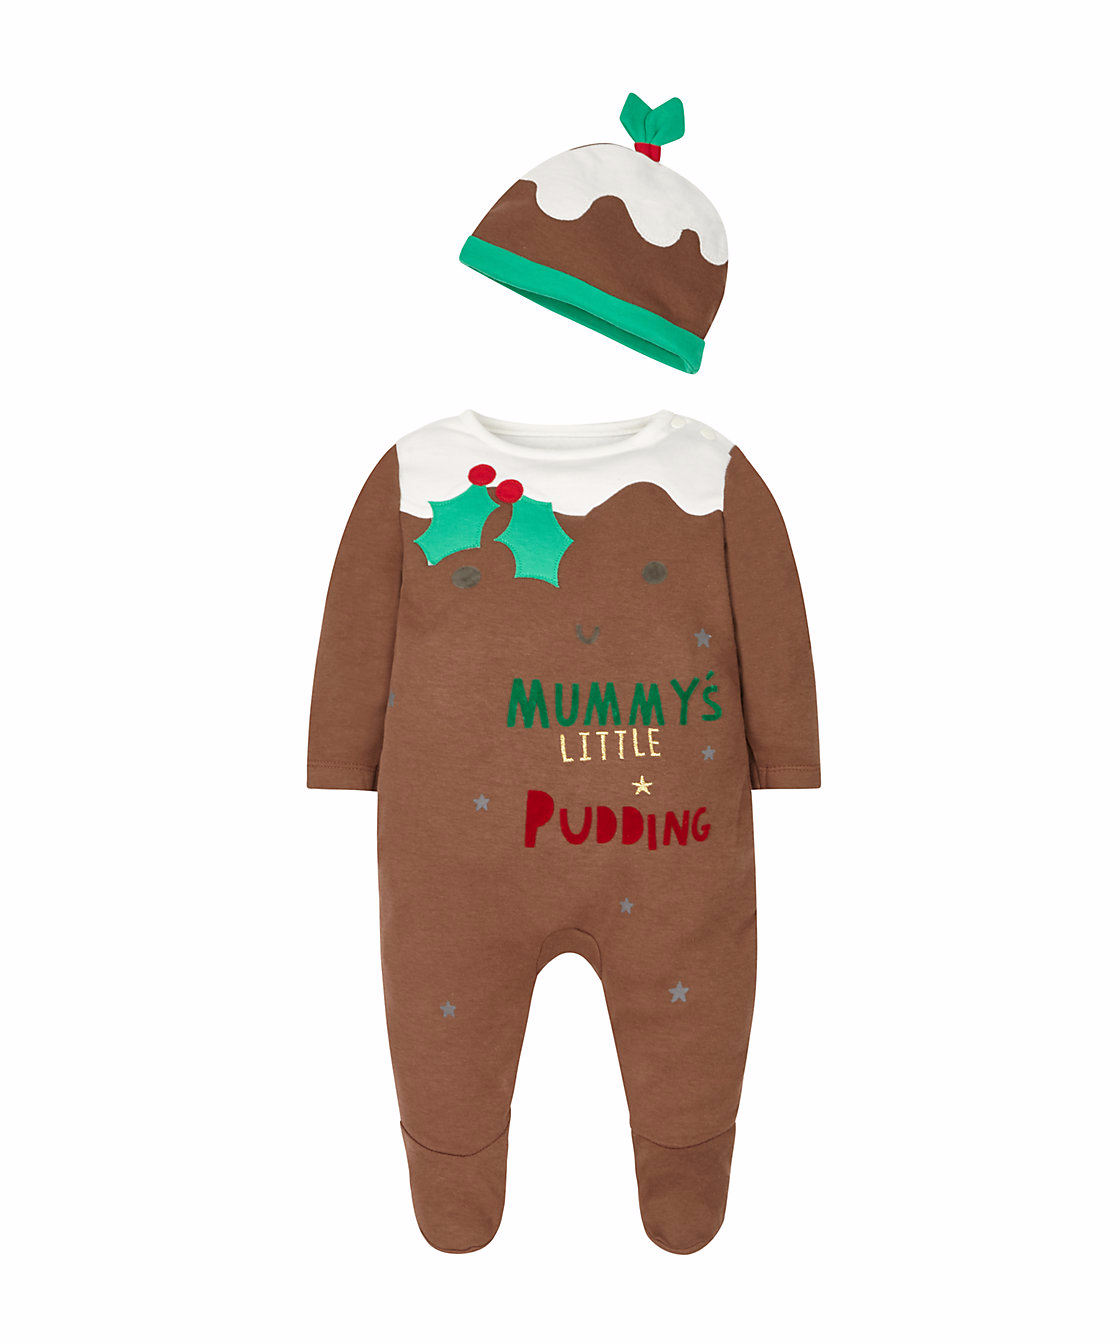 Christmas Pudding Outfit.Our Top 5 Baby Christmas Outfits Loved By Parents